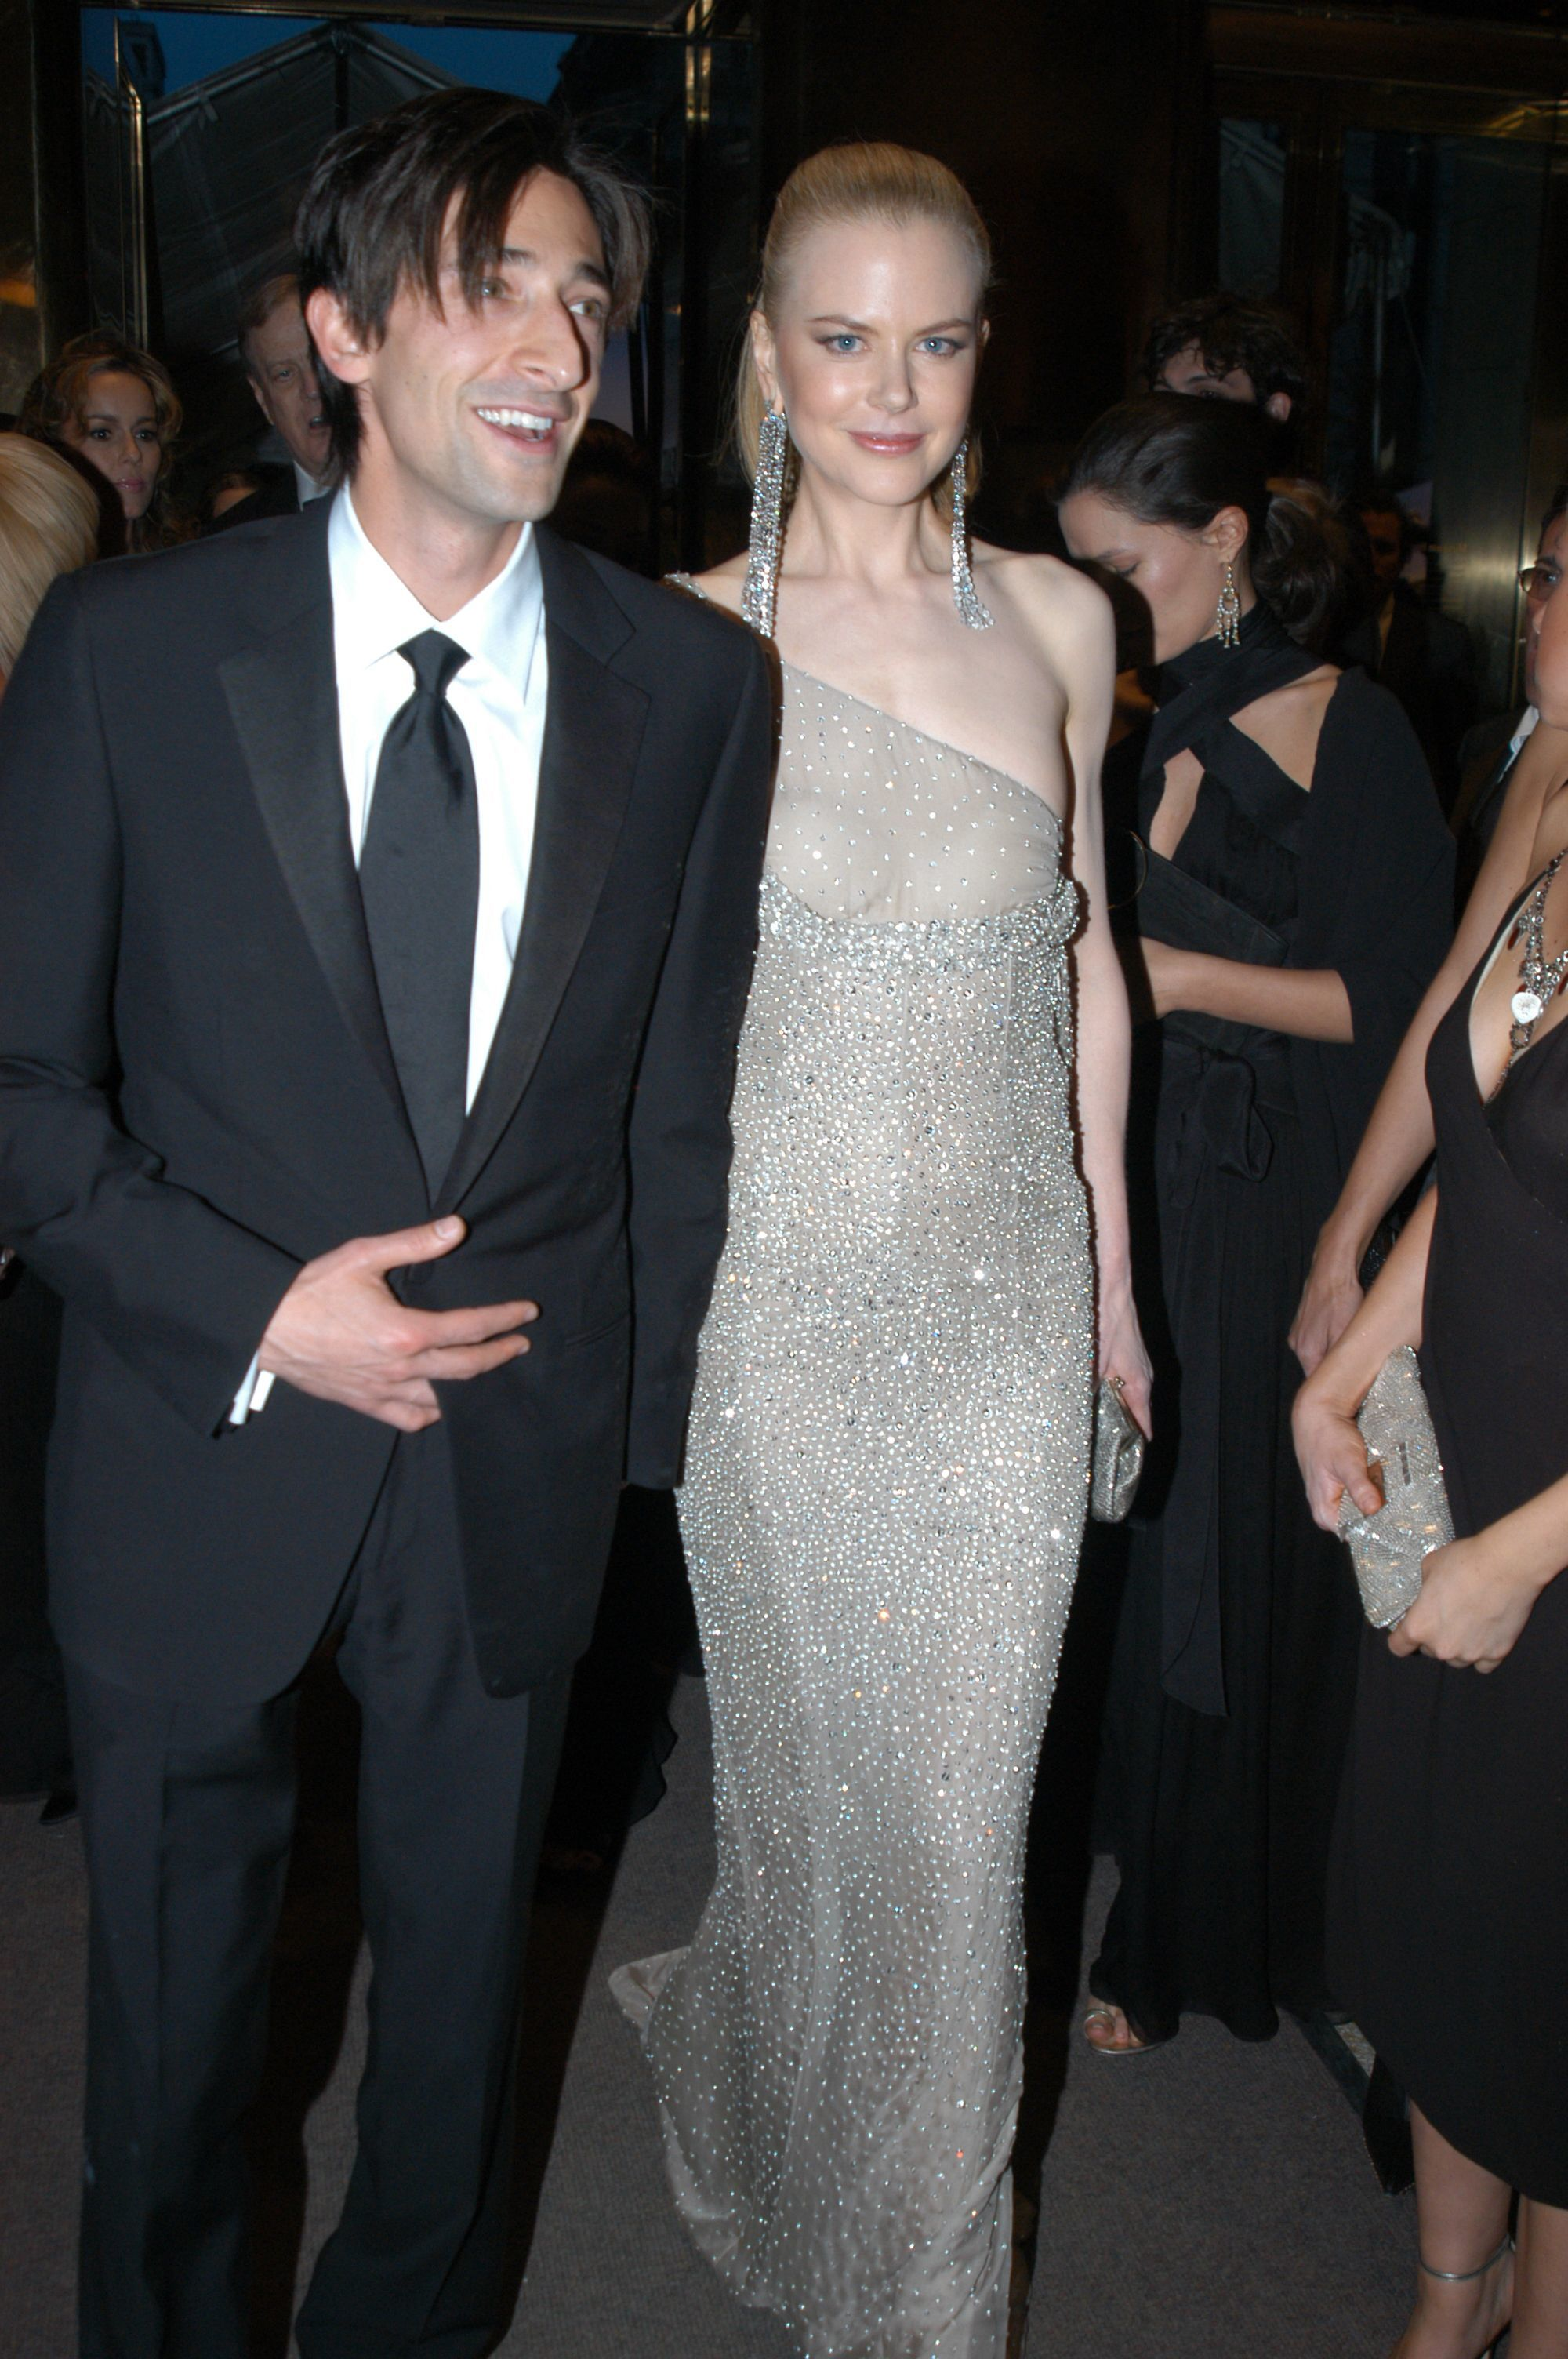 Adrien Brody and Nicole Kidman attend the Costume Institute Benefit Gala: 'Party of the Year' at the Metropolitan Museum of Art in New York City on April 28, 2003.